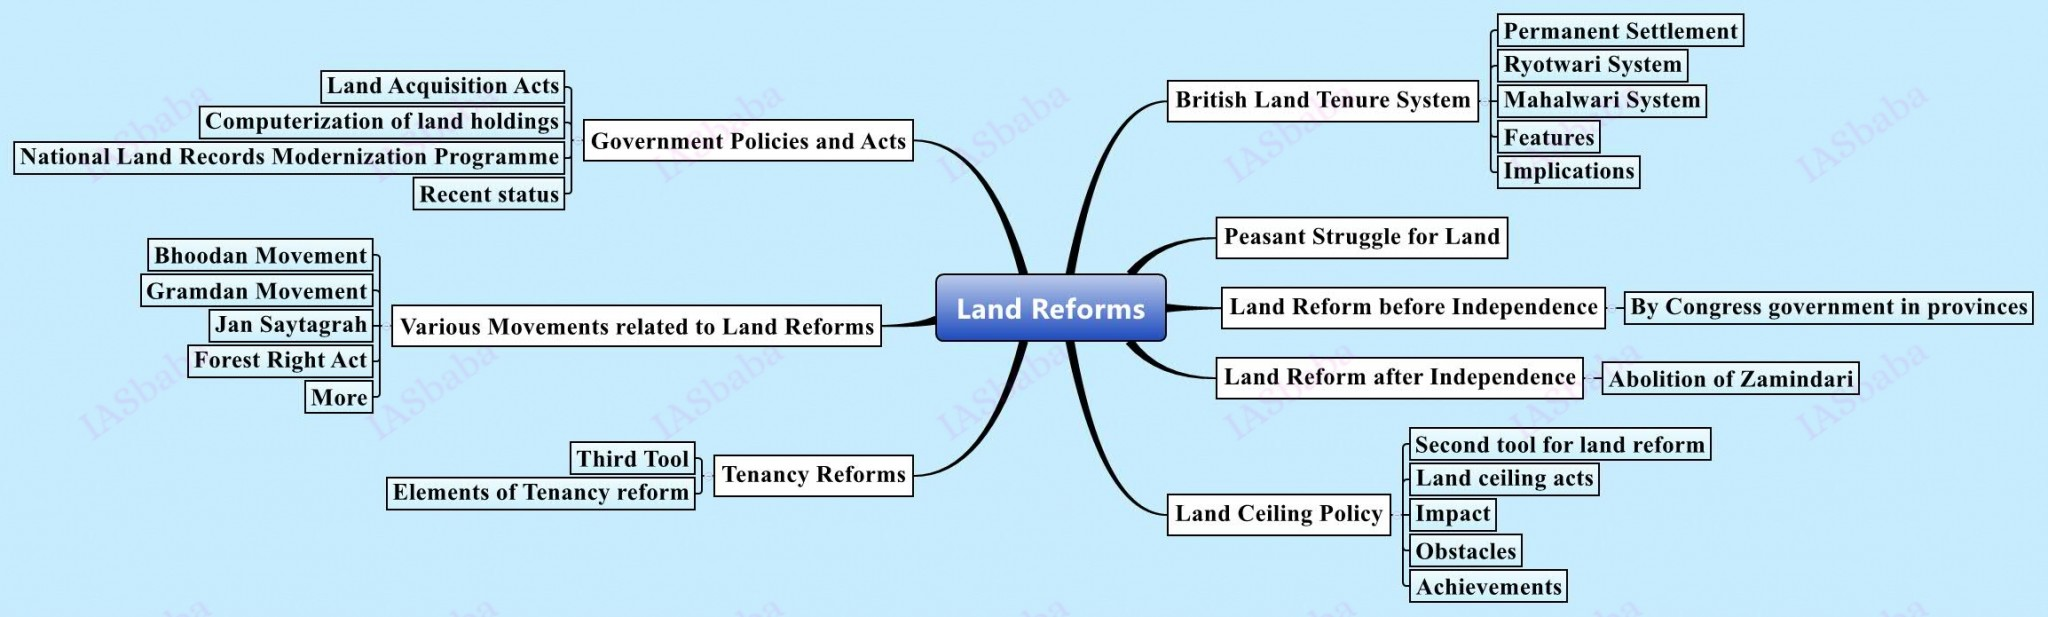 Land Reforms